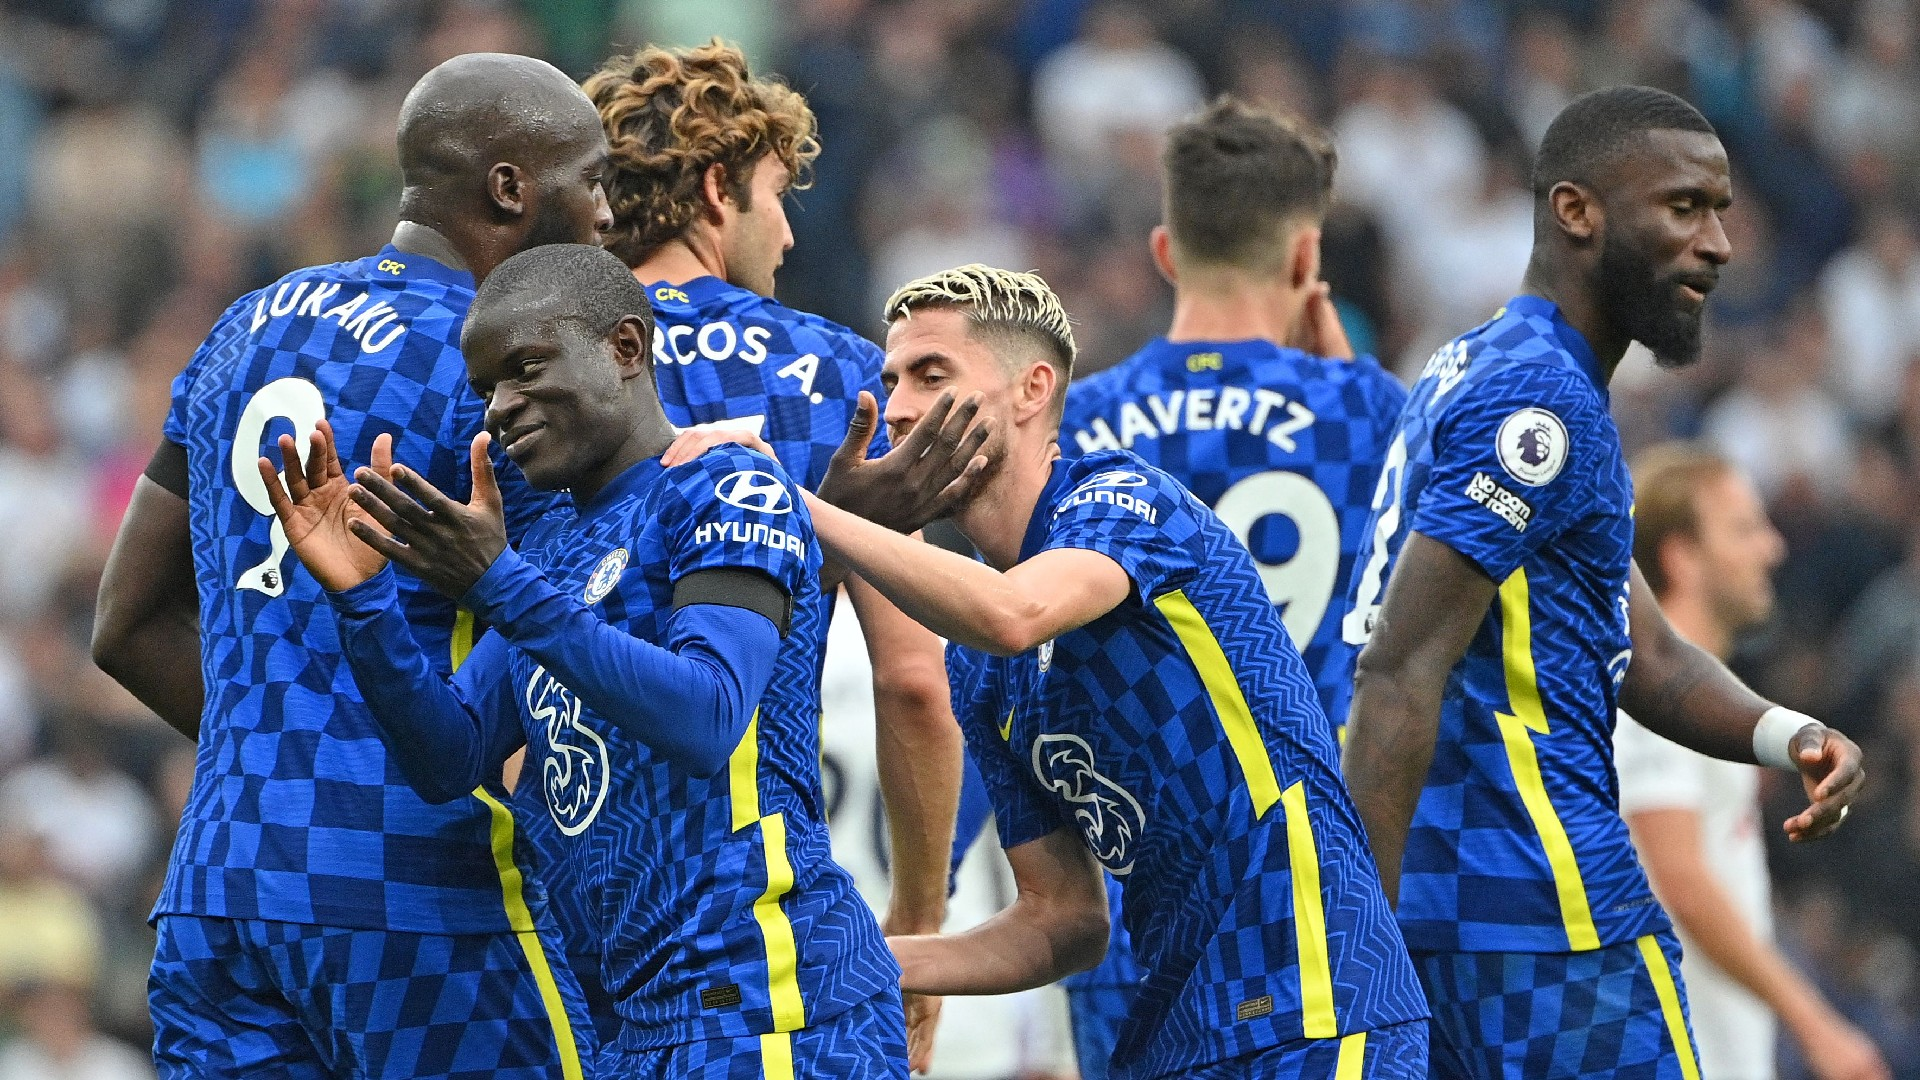 'Kante makes a huge difference' – Tuchel highlights 'unique' Chelsea midfielder's role in win against Tottenham